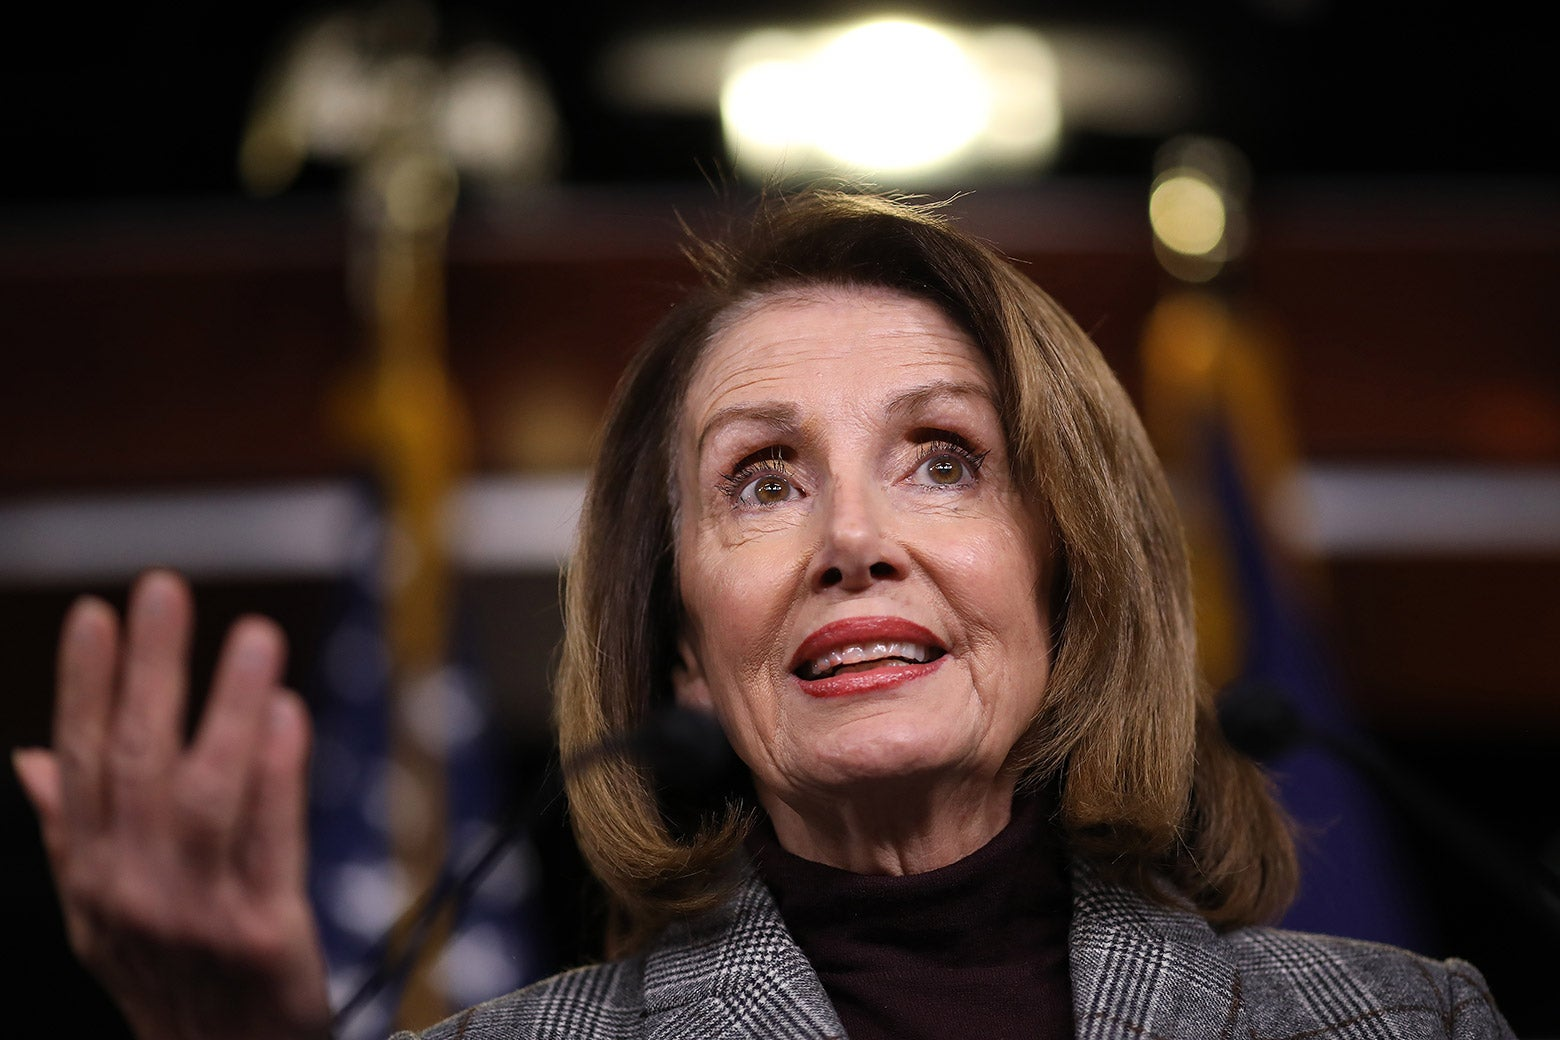 Nancy Pelosi answers questions during her weekly press conference.